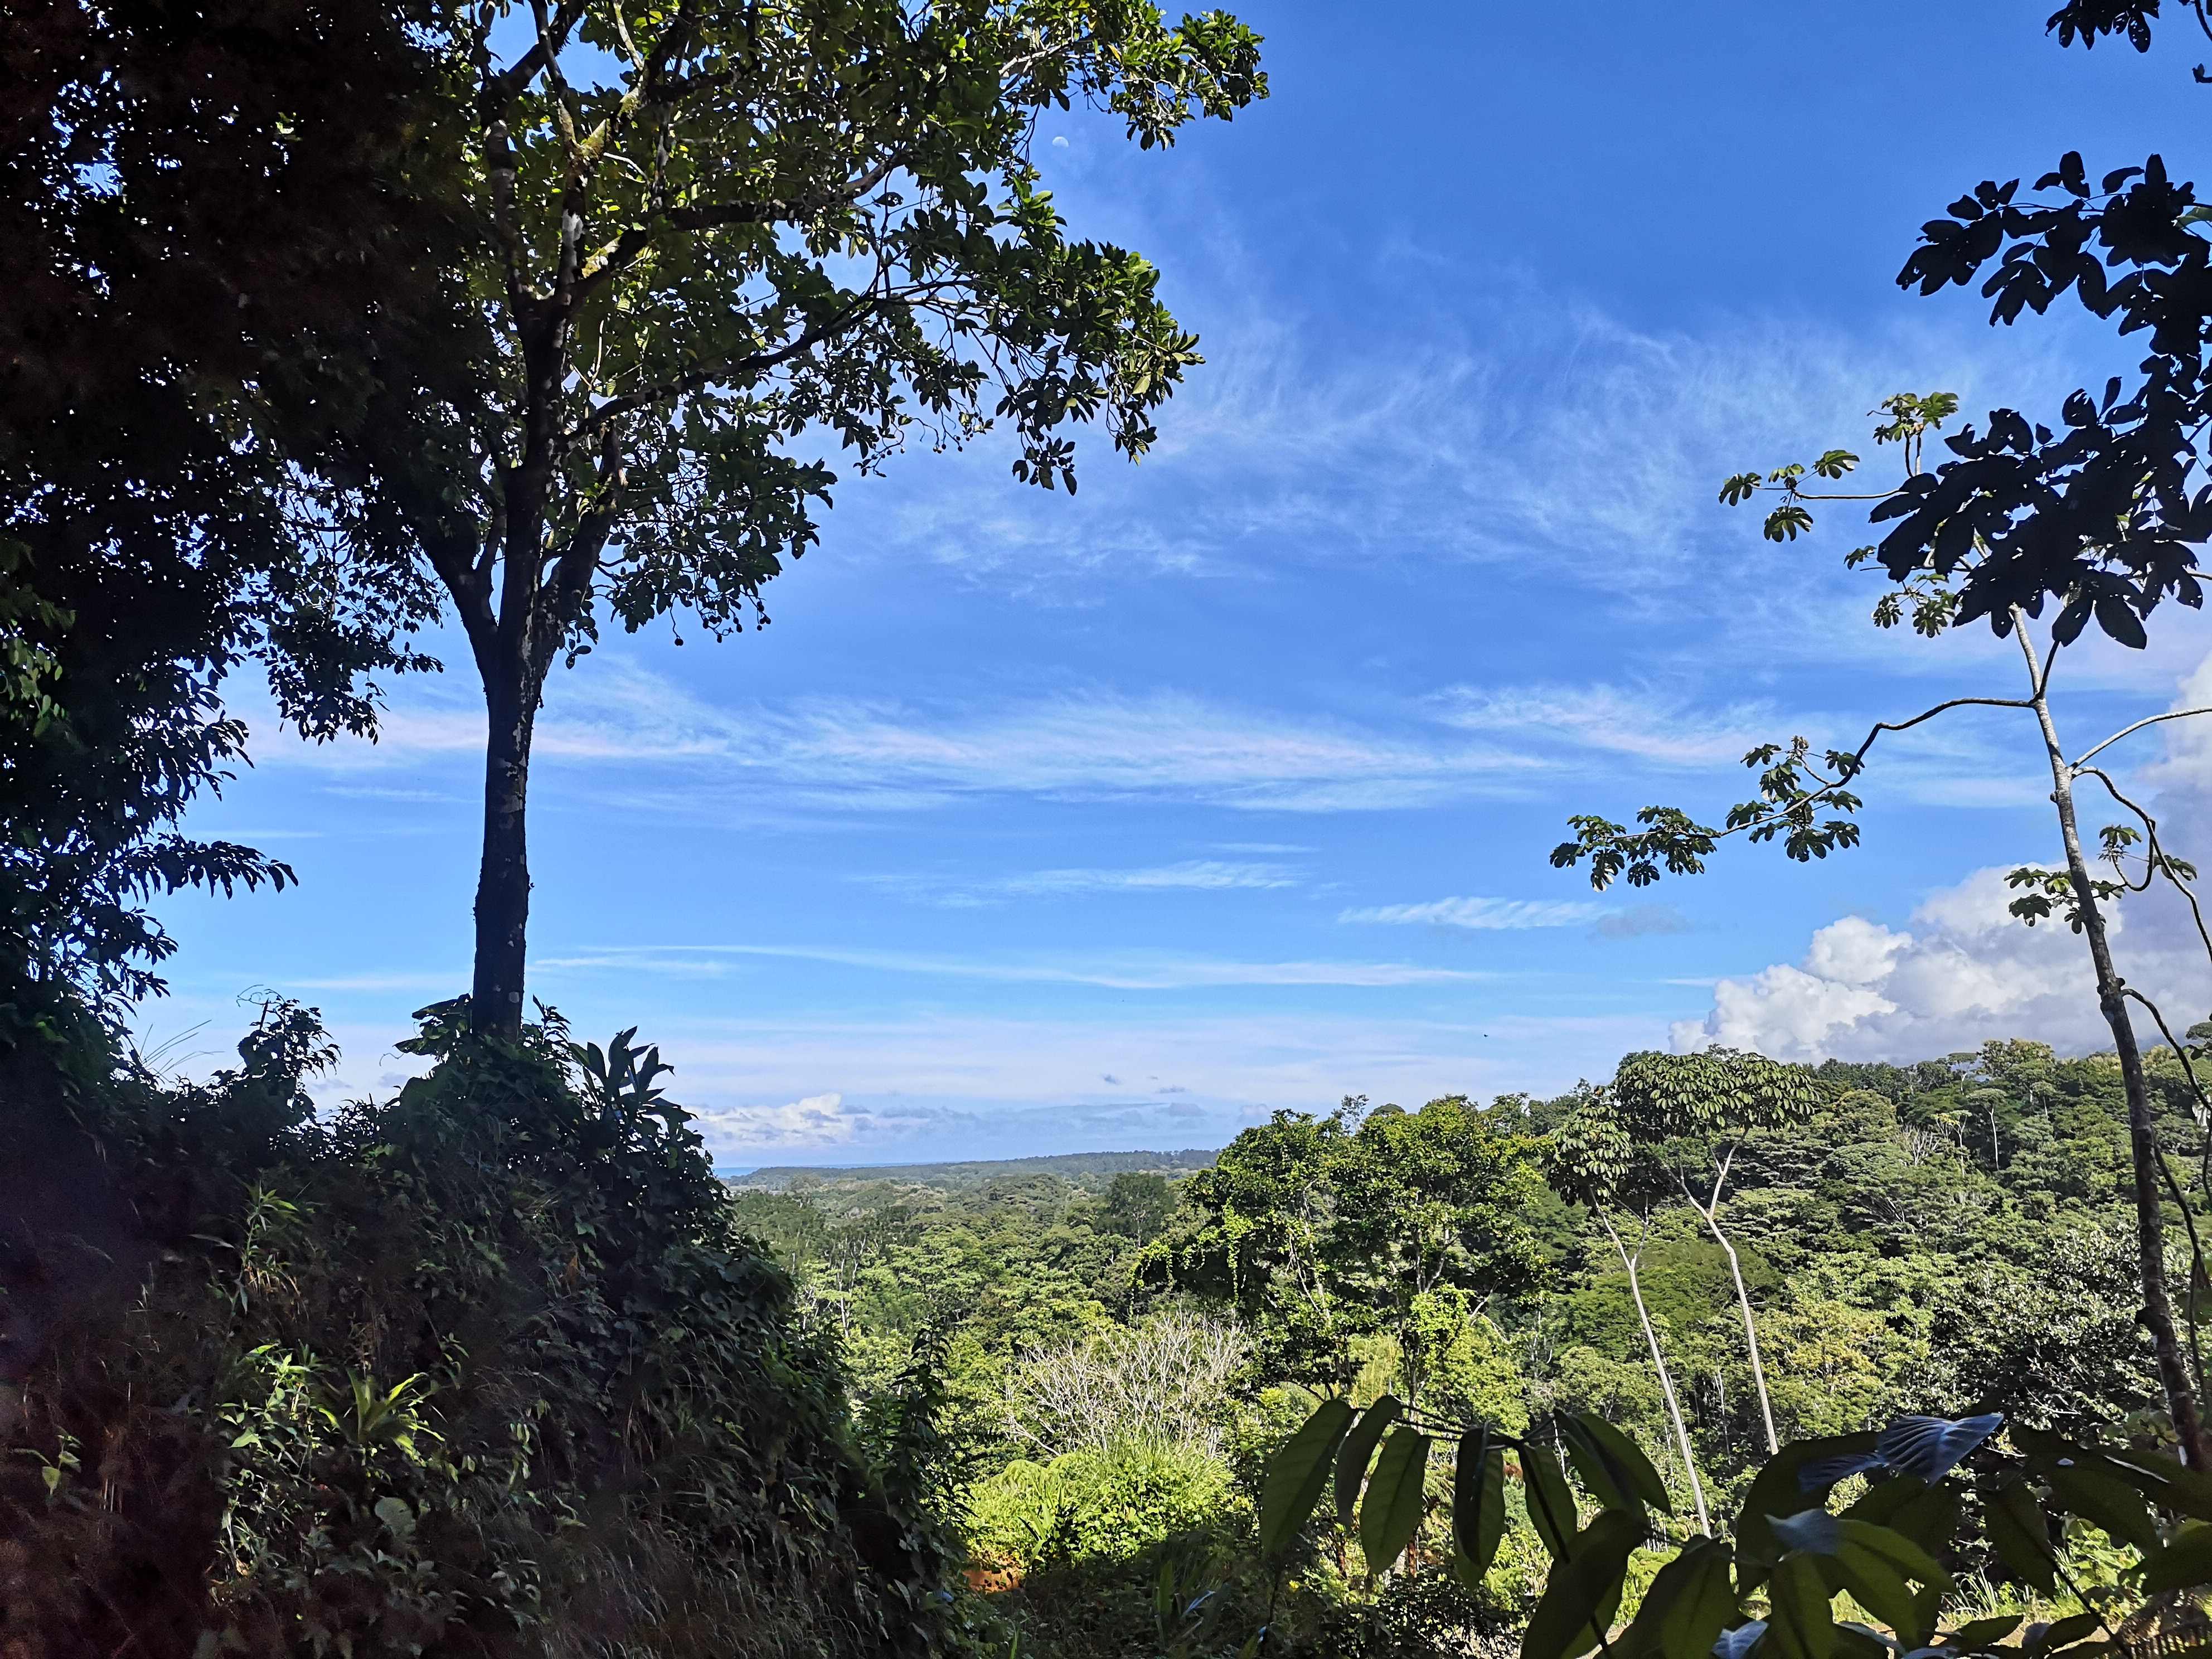 Property for development with advanced roads and creek in Bahia Ballena, Osa